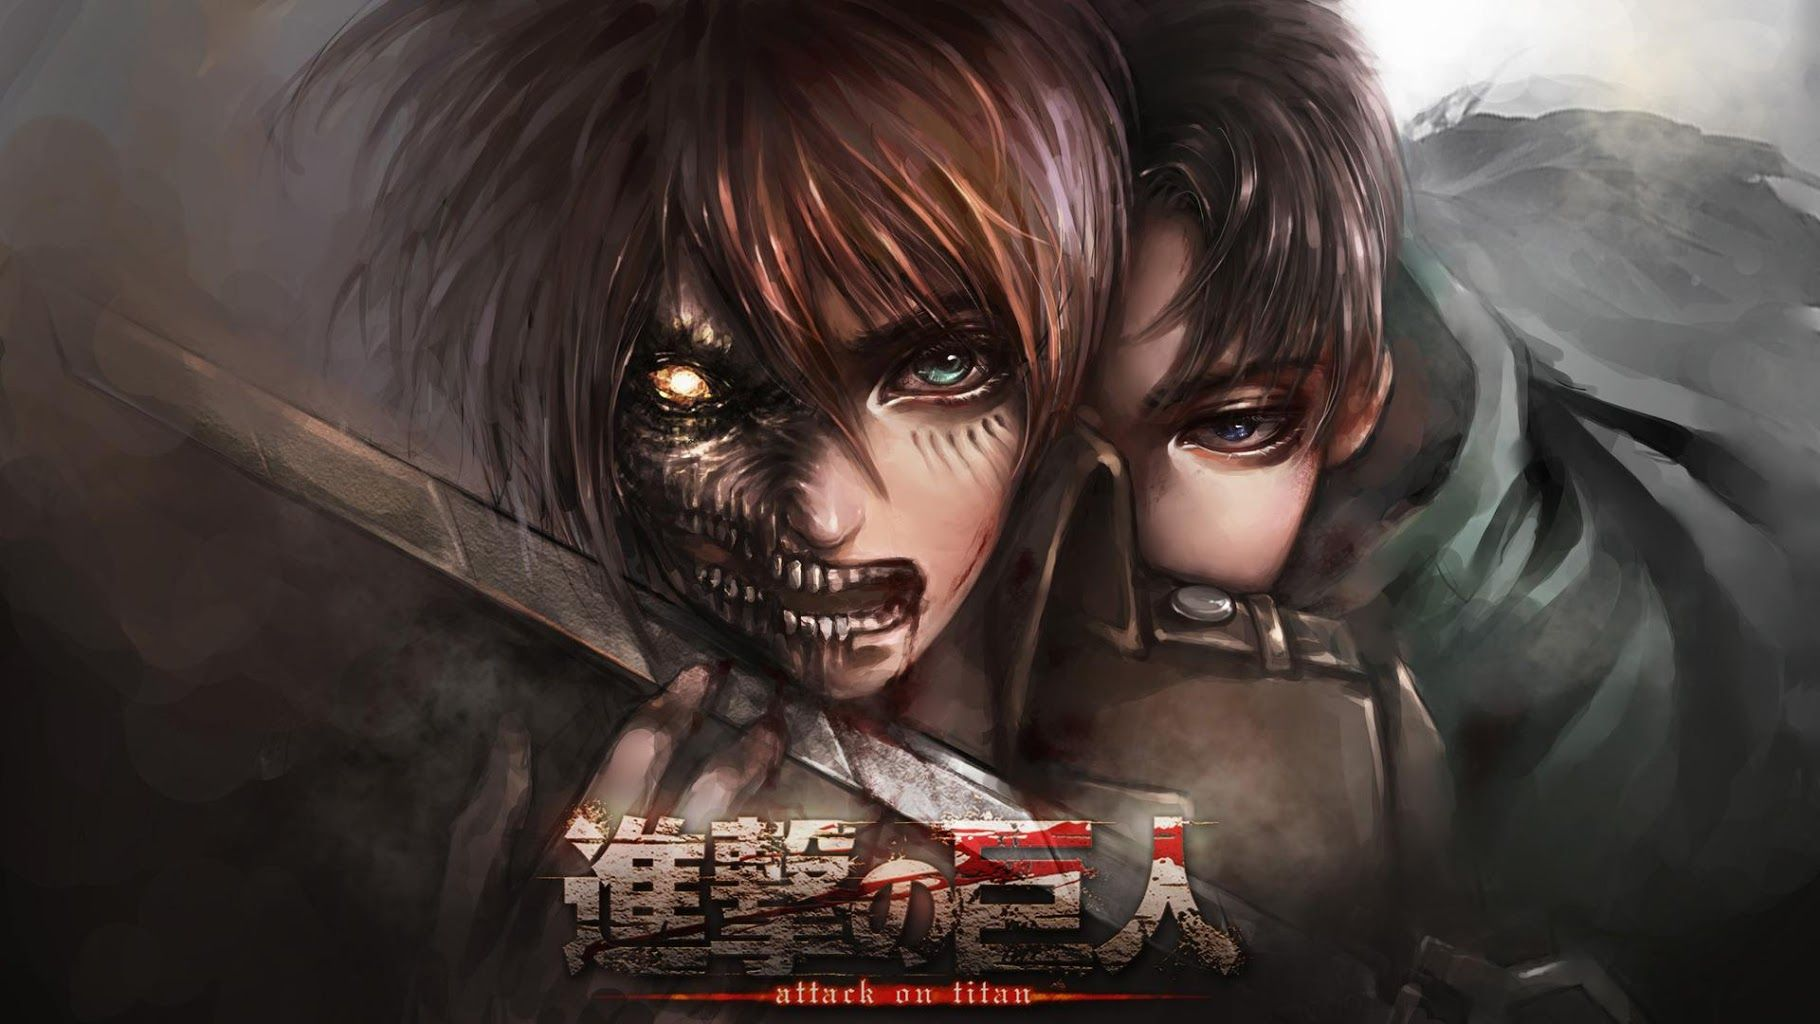 attack on titan wallpaper hd Google Search Anime/Manga